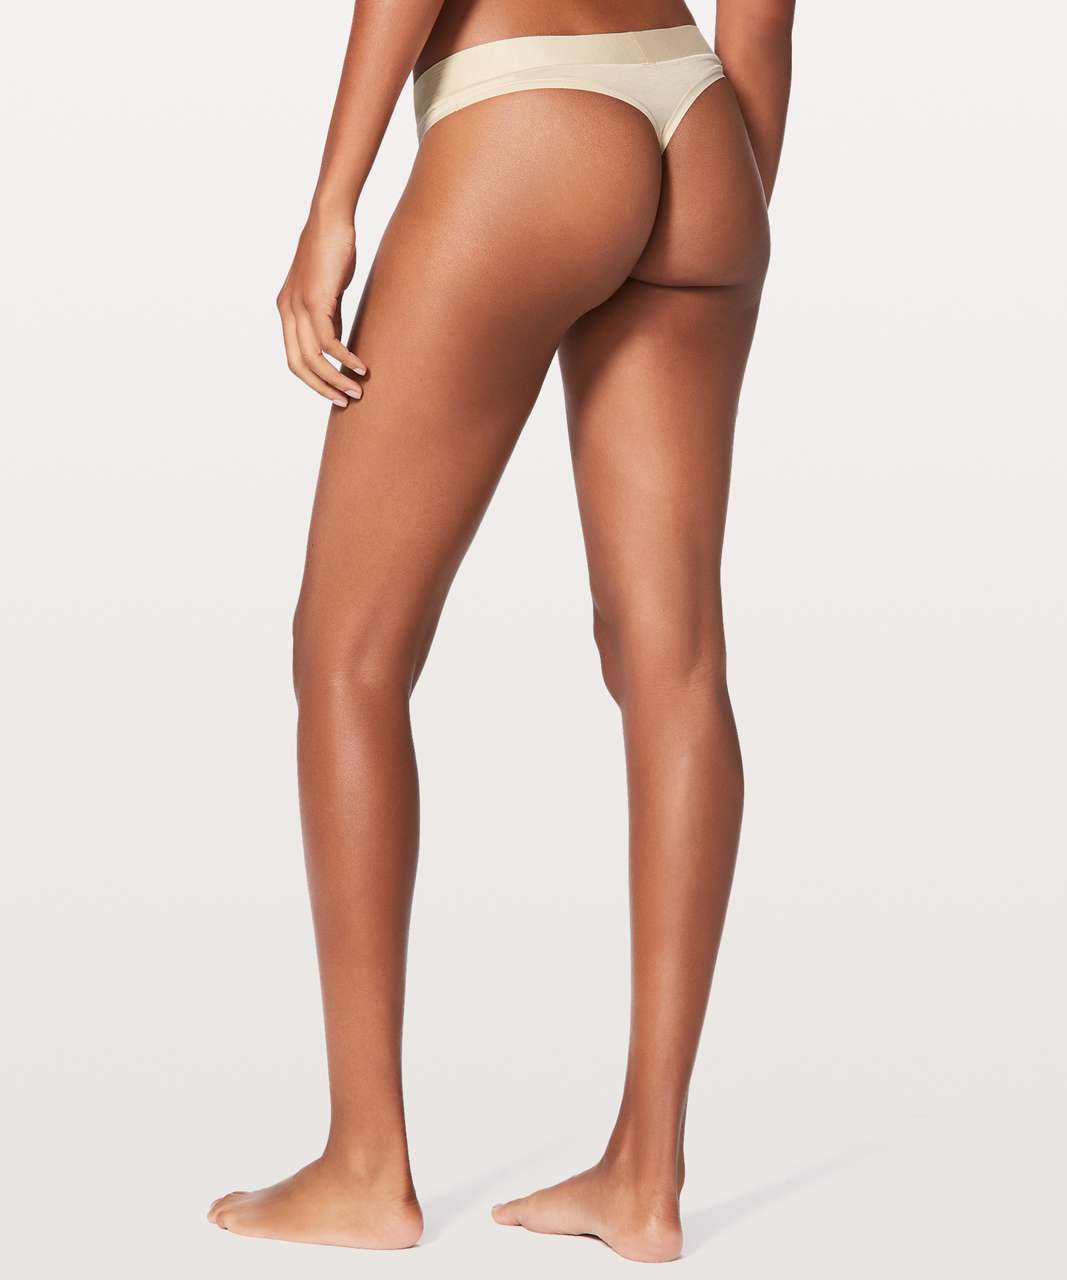 Lululemon Mula Bandhawear Thong - Chantilly